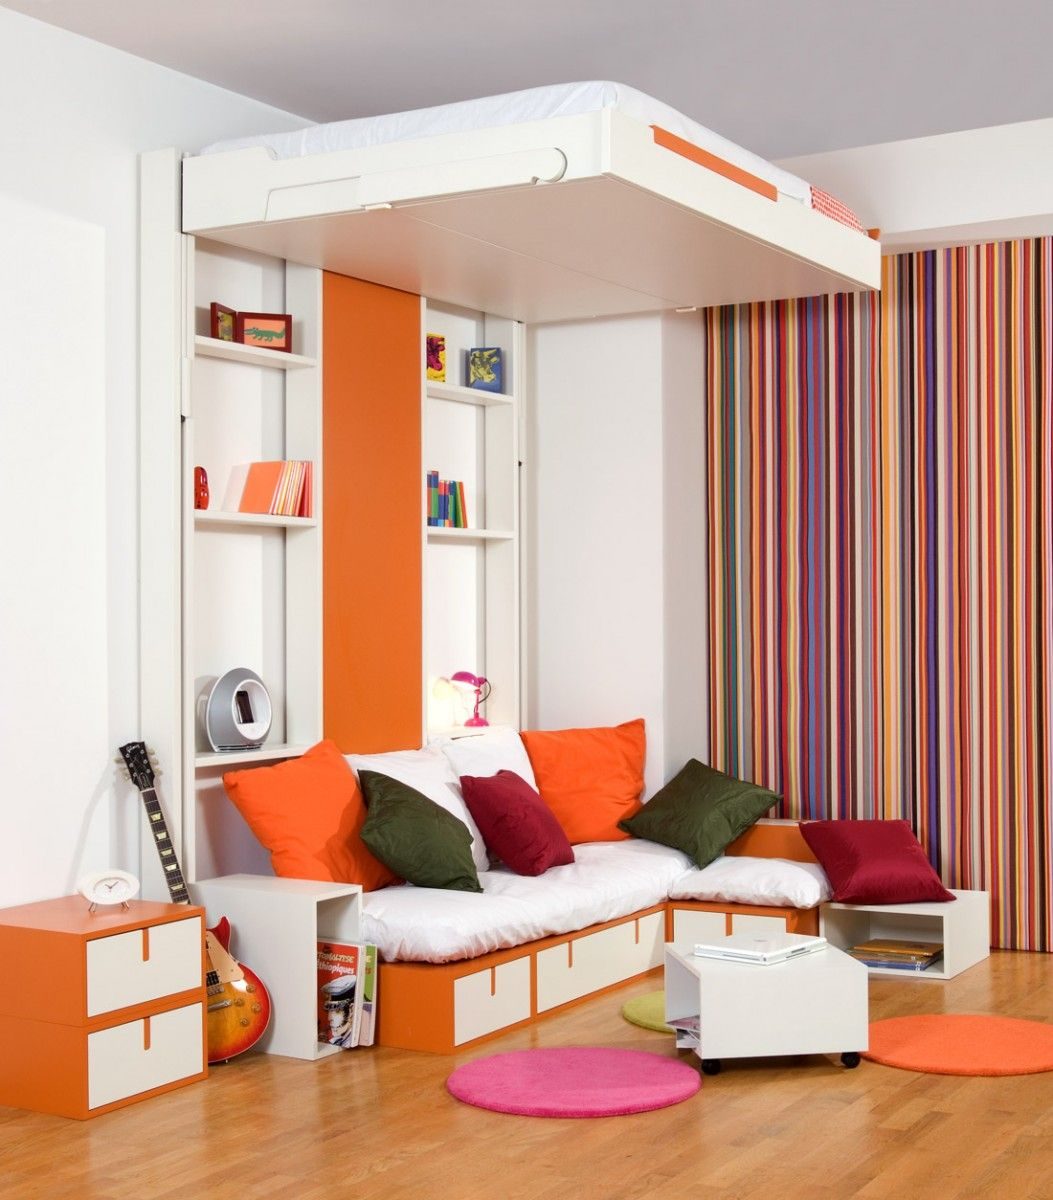 Room Awesome Espace Loggiau0027s Pop and roll